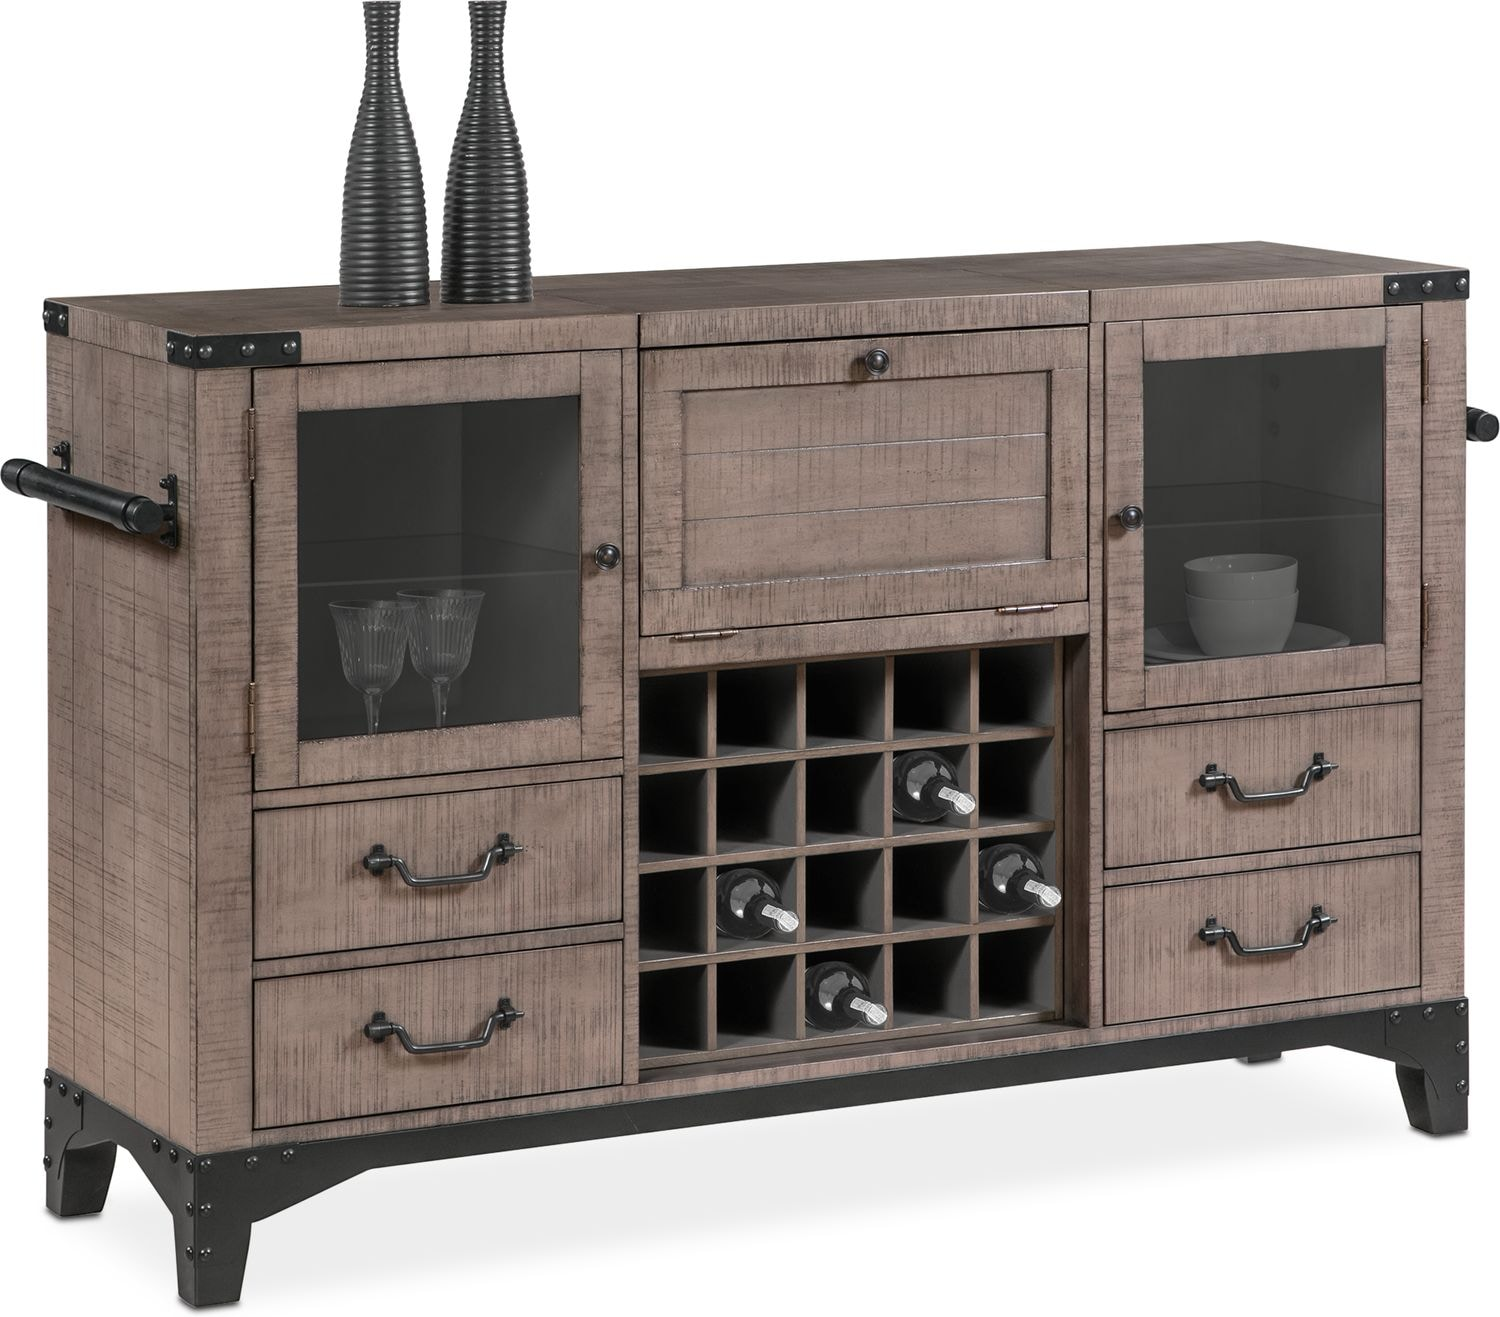 Dining Room Furniture - Newcastle Sideboard